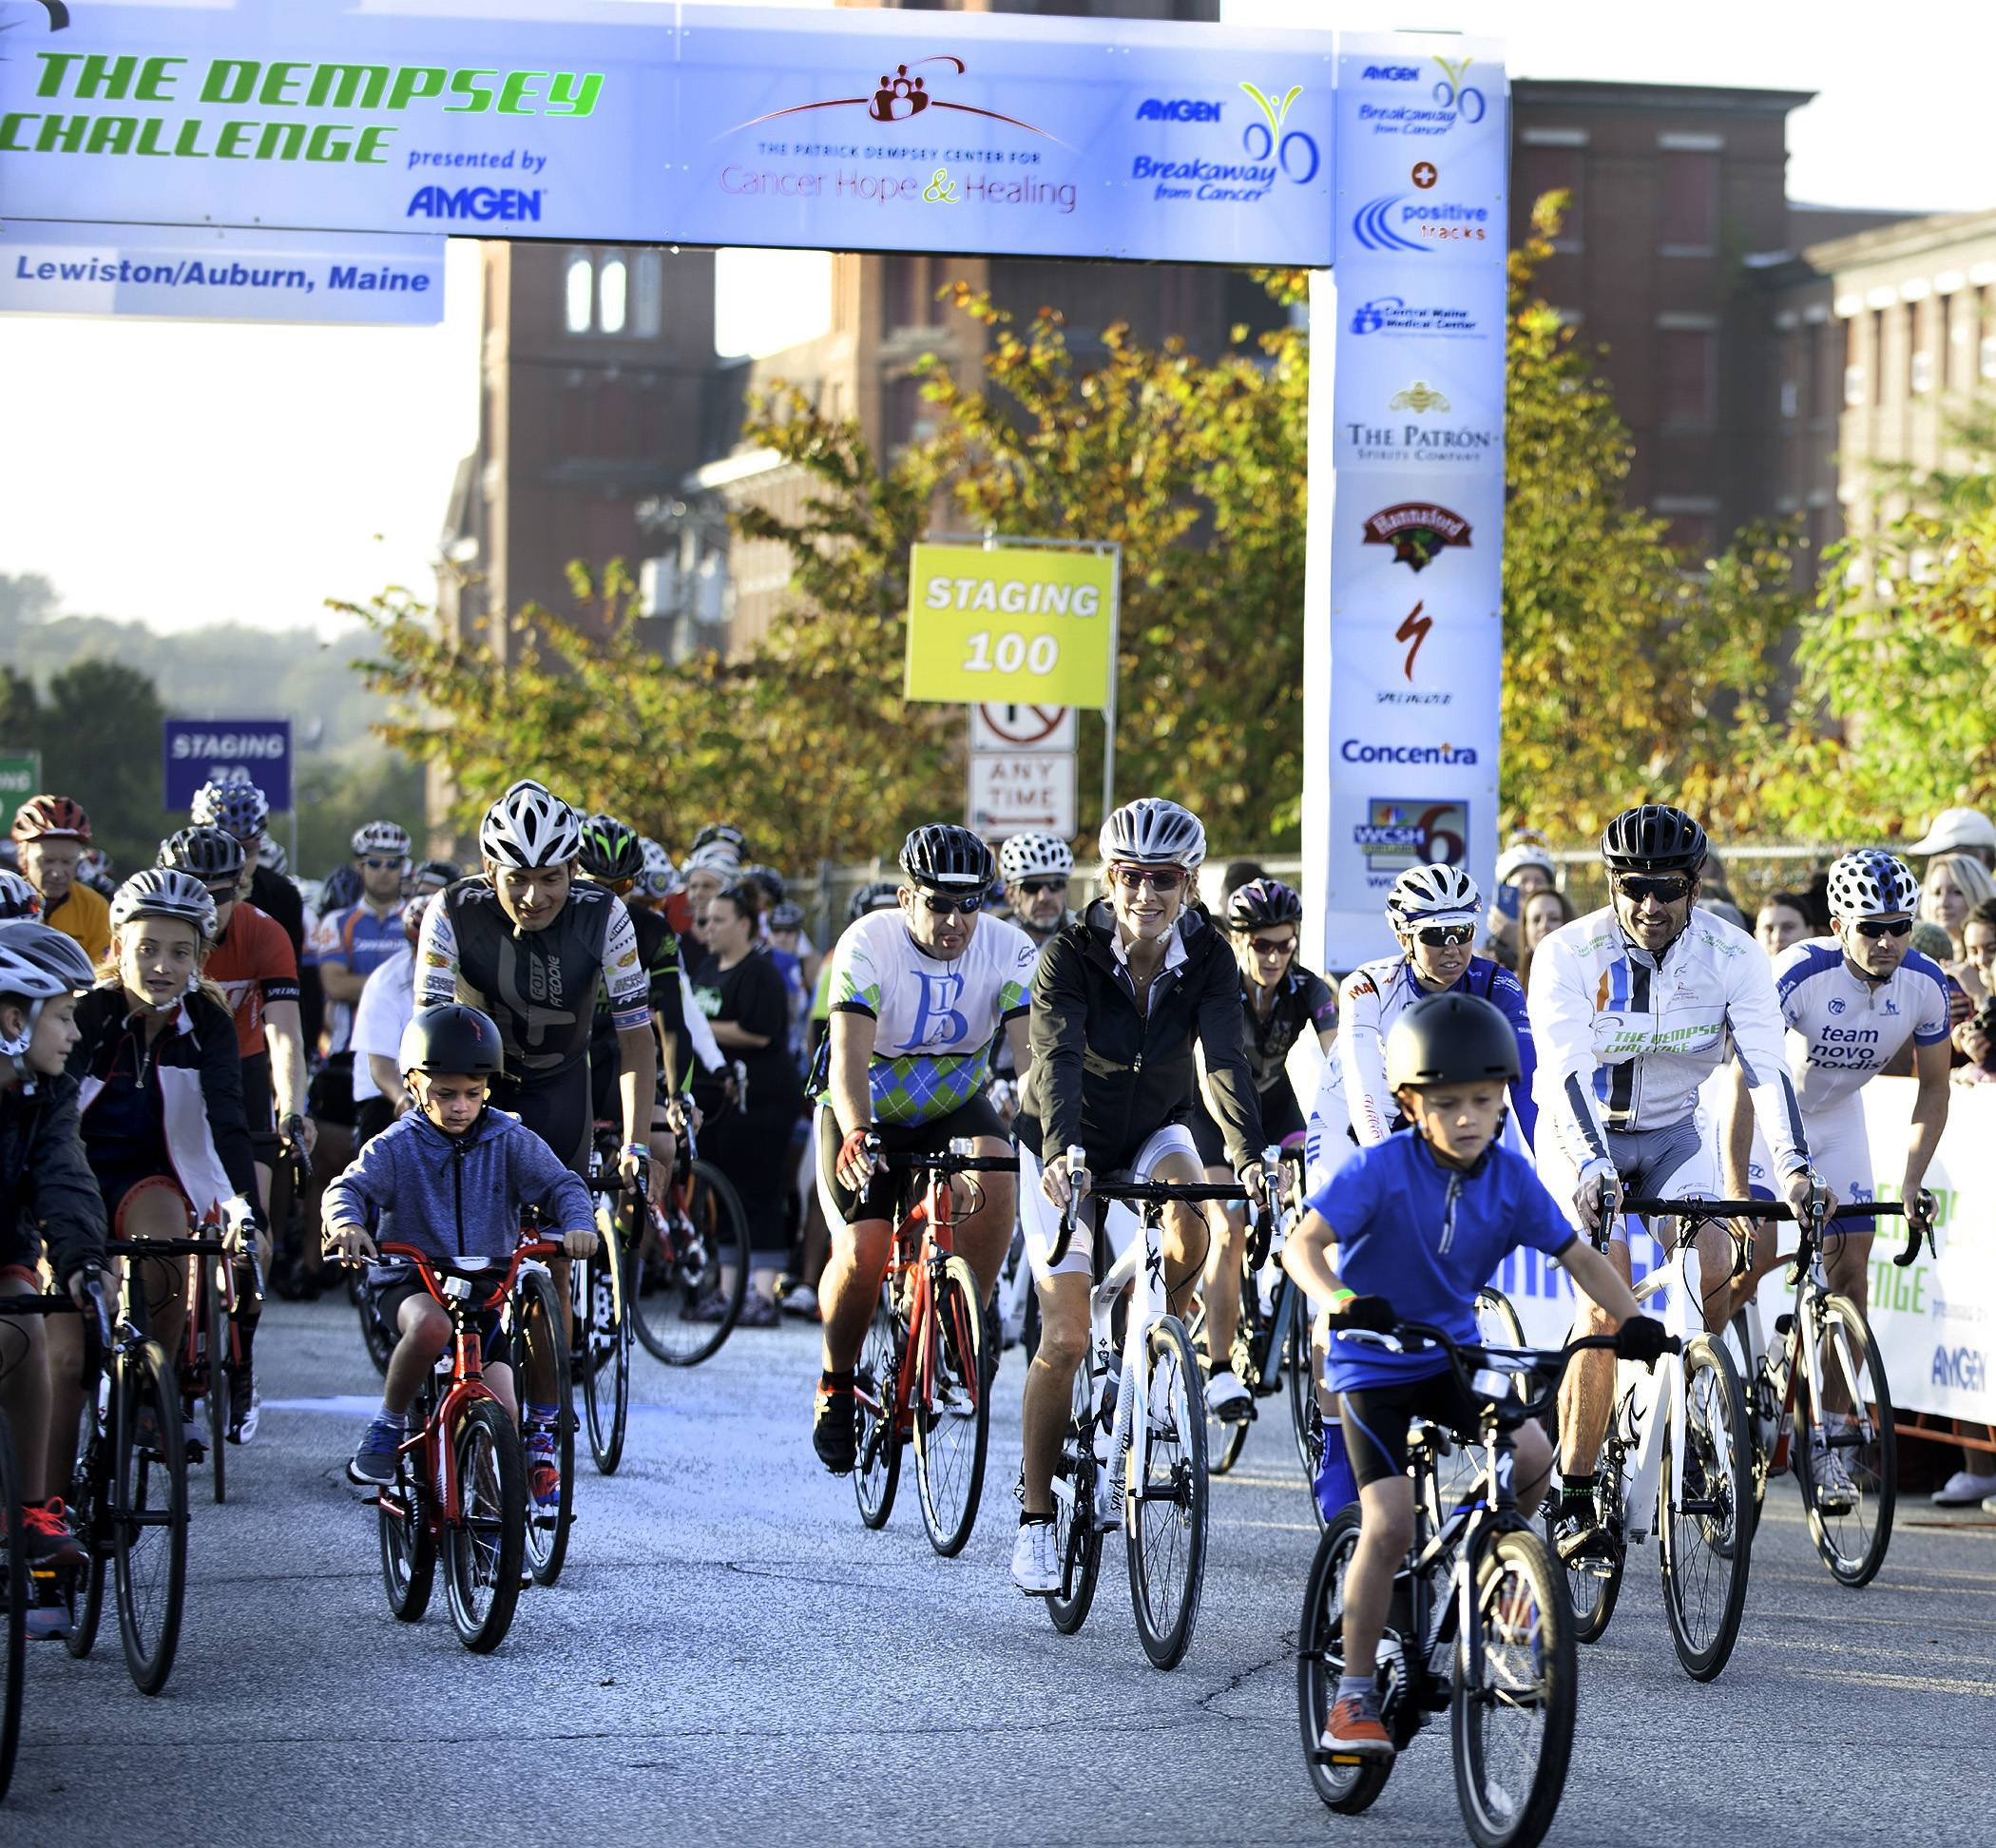 Patrick Dempsey, second from right, is joined by his family, friends, professional riders, supporters and community members as the first wave of bicyclists take to the streets in Lewiston, Maine, at the start of the 2014 Dempsey Challenge bike ride. The challenge is a fundraiser for cancer research and care that is in its sixth year.